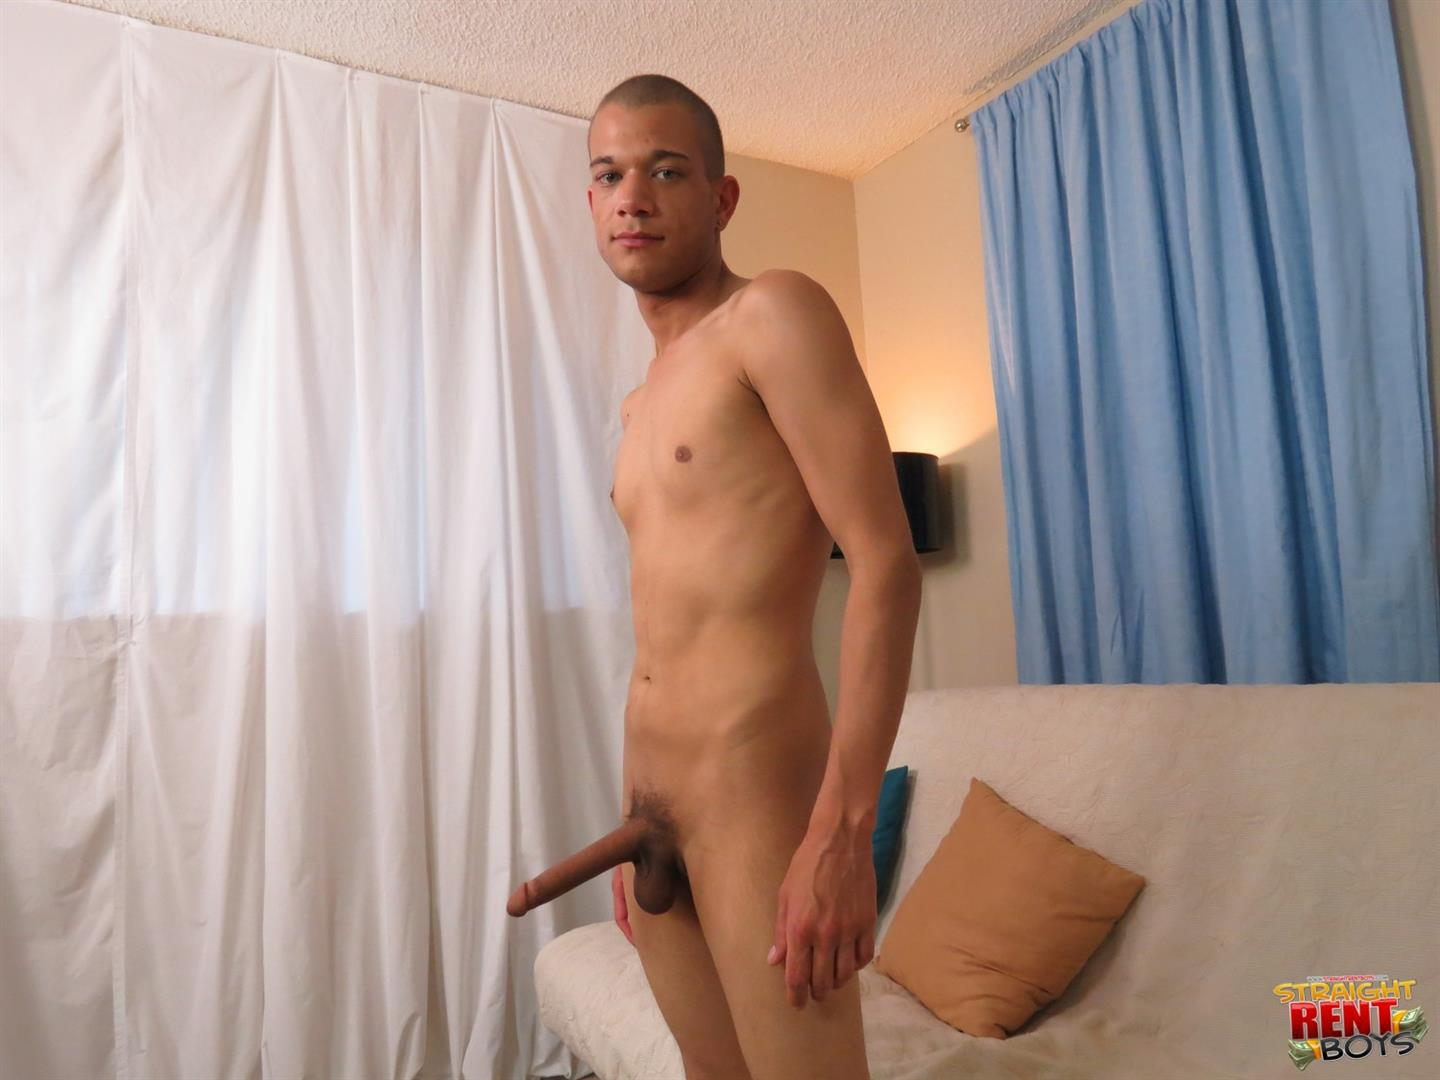 Straight Rent Boys Straight Rent Boys Rayden Steele and Bruno Big Dick Amateur Gay Porn 12 Straight Rent Boy Gets Paid To Suck A Cock and Get His Sucked In Return